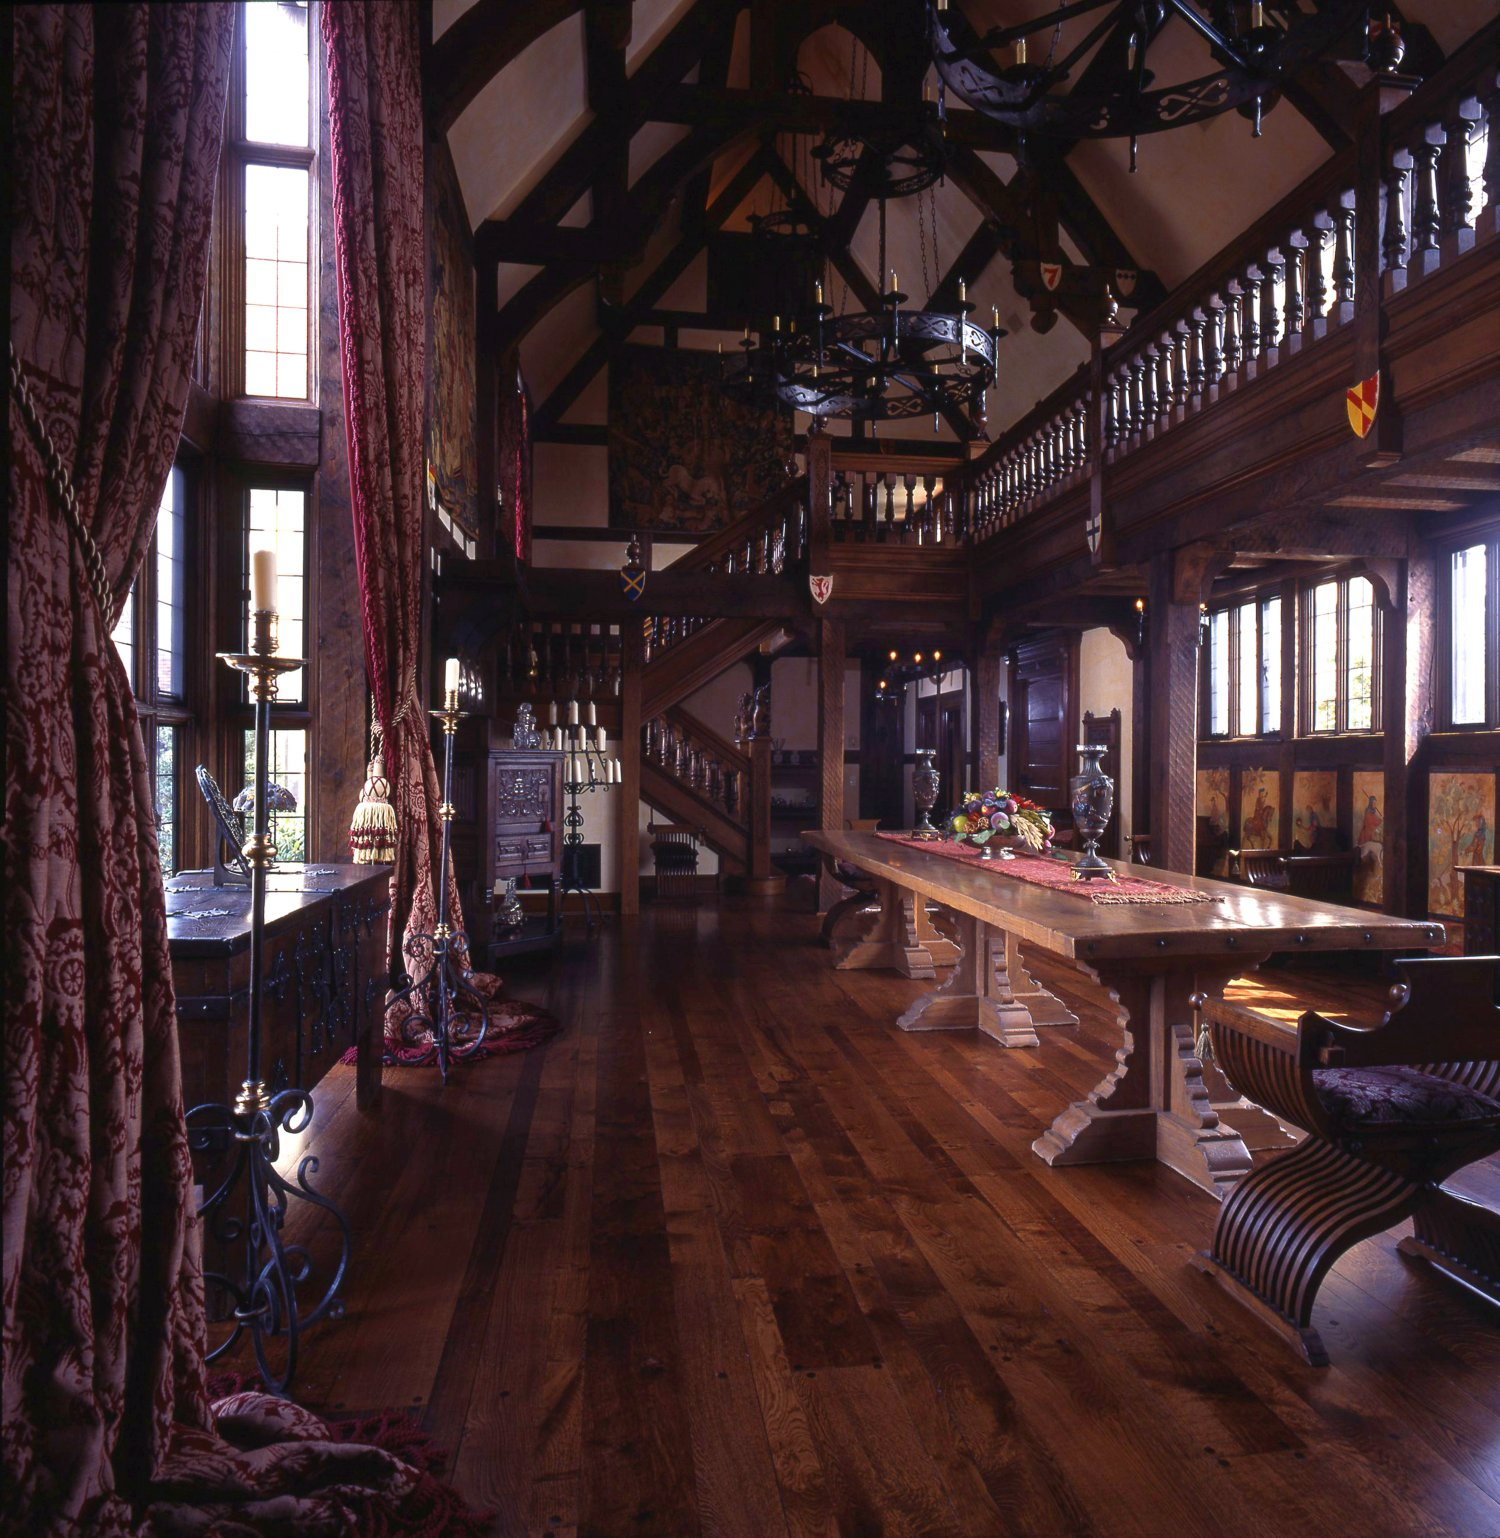 The Great Hall - with gallery above